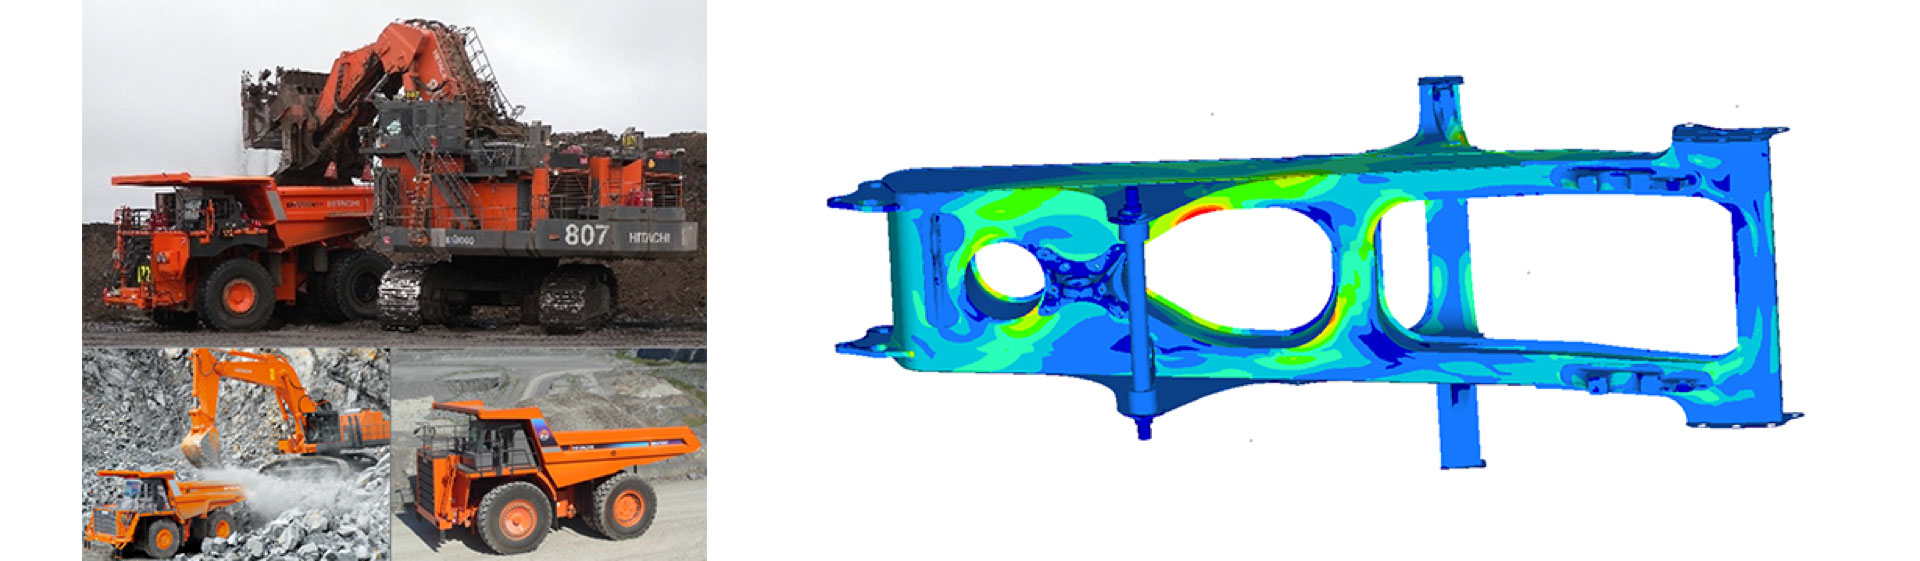 Rigid frame vehicles and finite element analysis in Maple